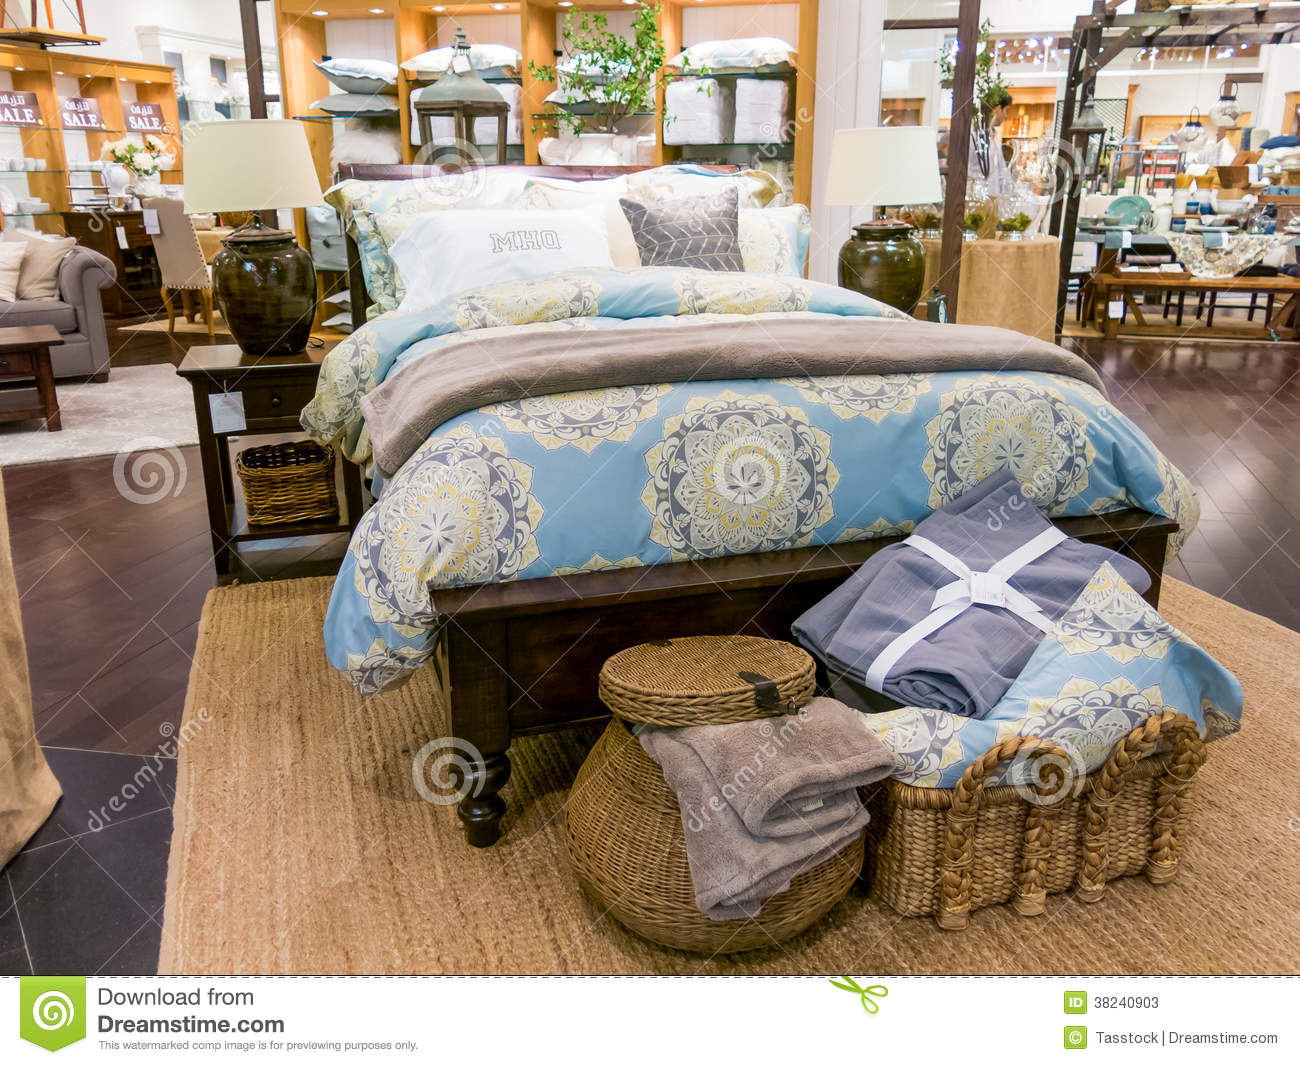 Home decor store in dubai mall editorial stock photo for House and home decorating